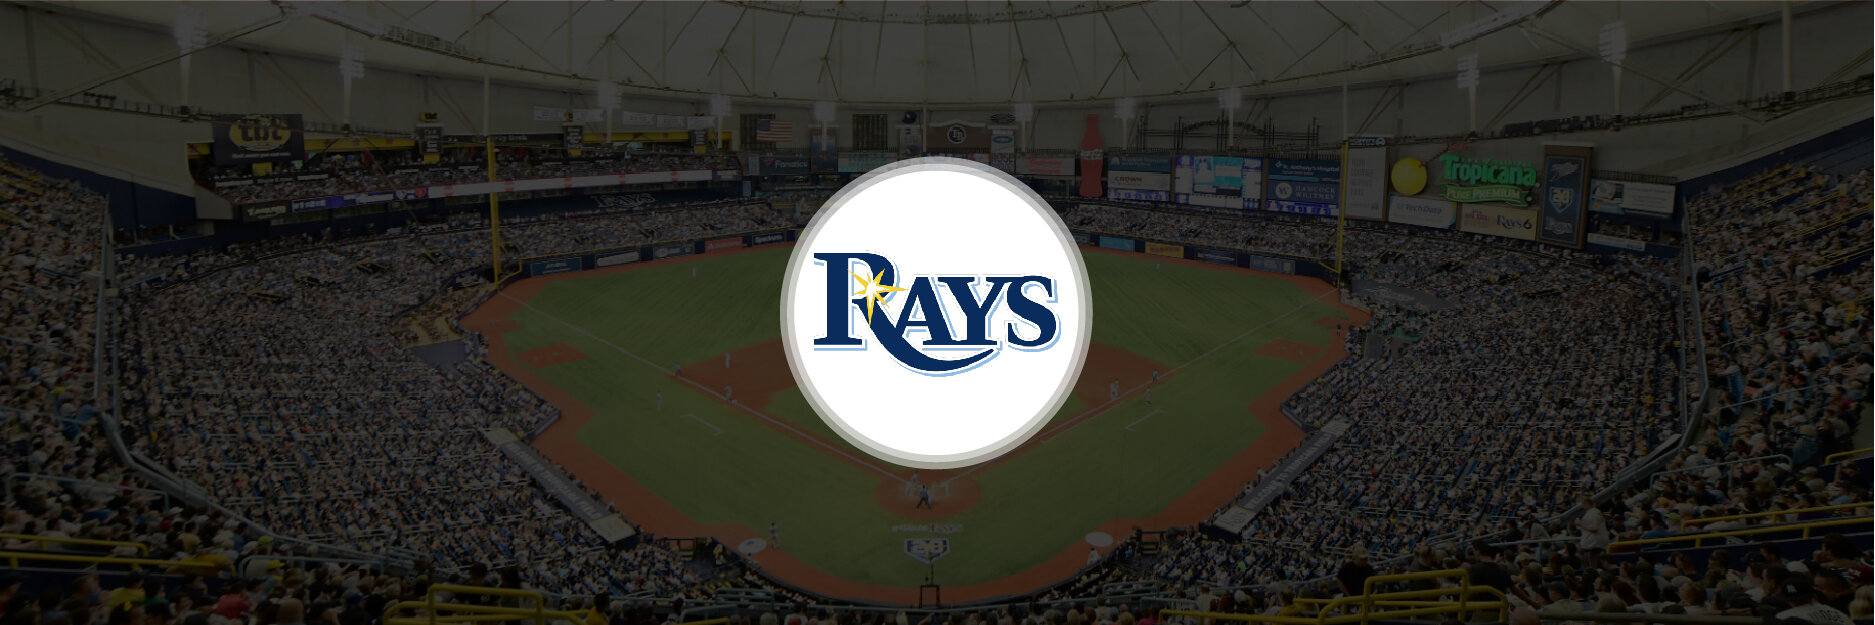 Tampa Bay Rays Analysis Before 2020 Season Start